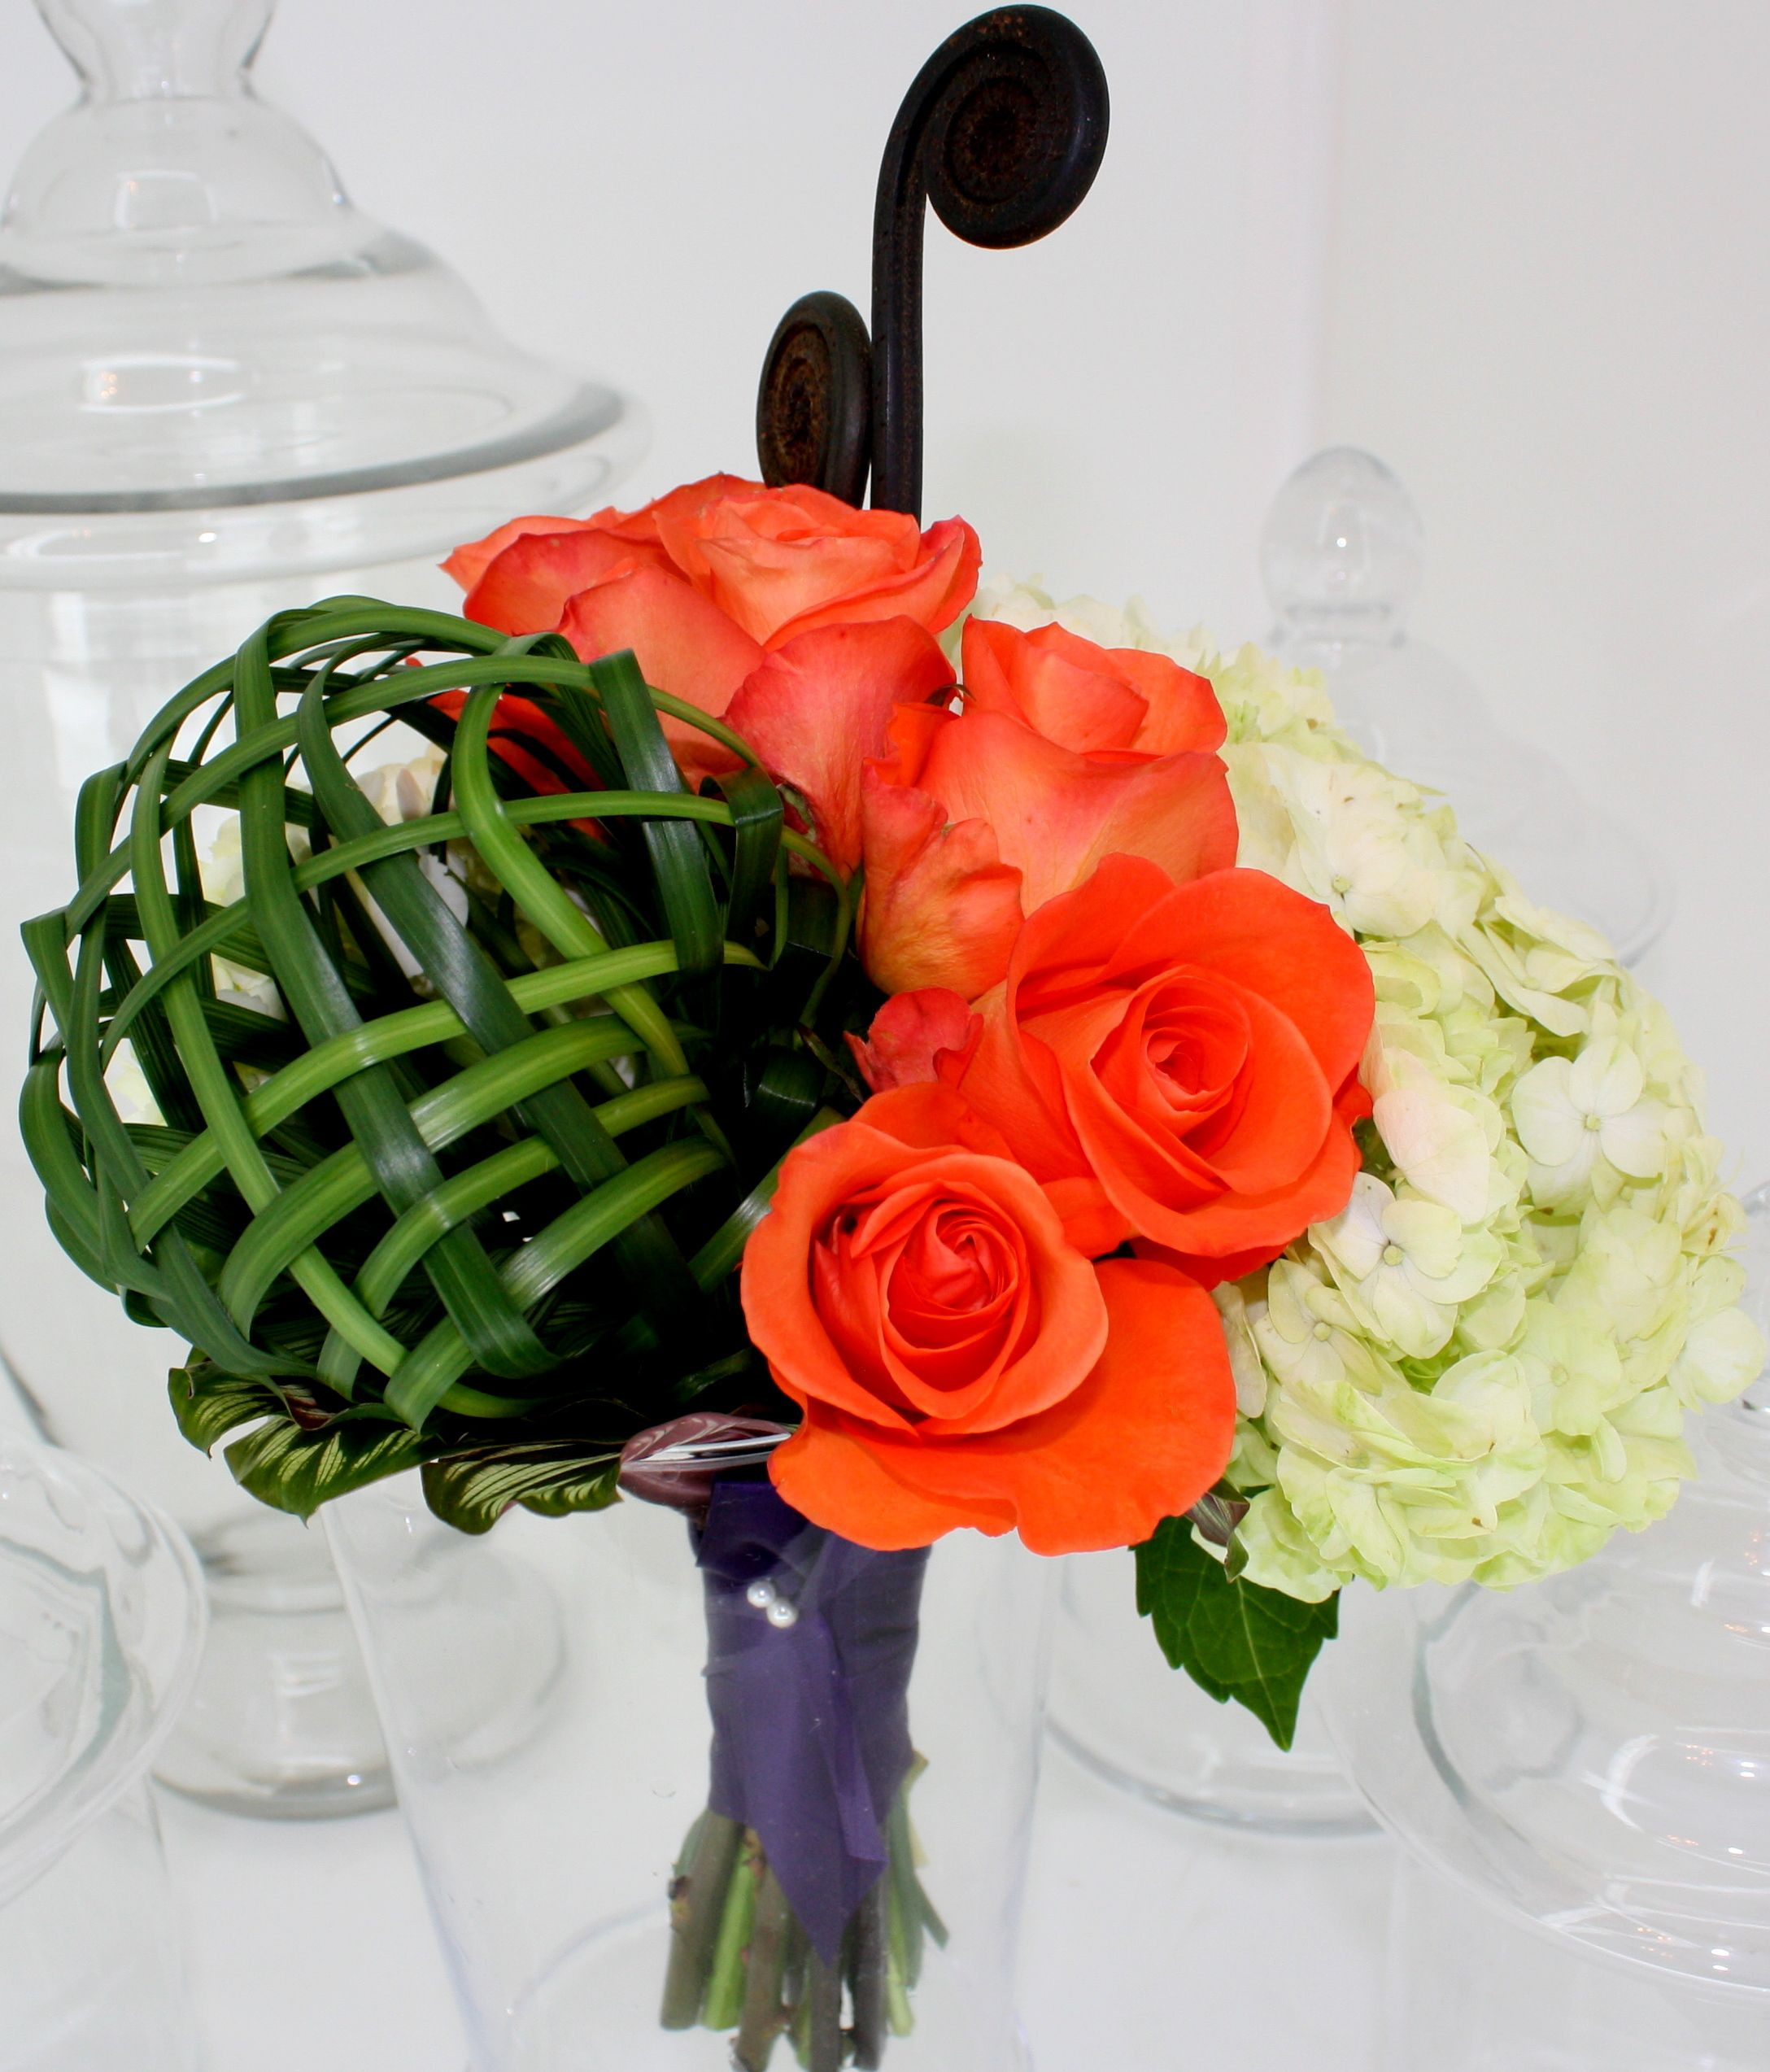 This contemporary bridal bouquet features a weaved lily grass sphere orange unique roses hydrangea and a couple of fiddle heads